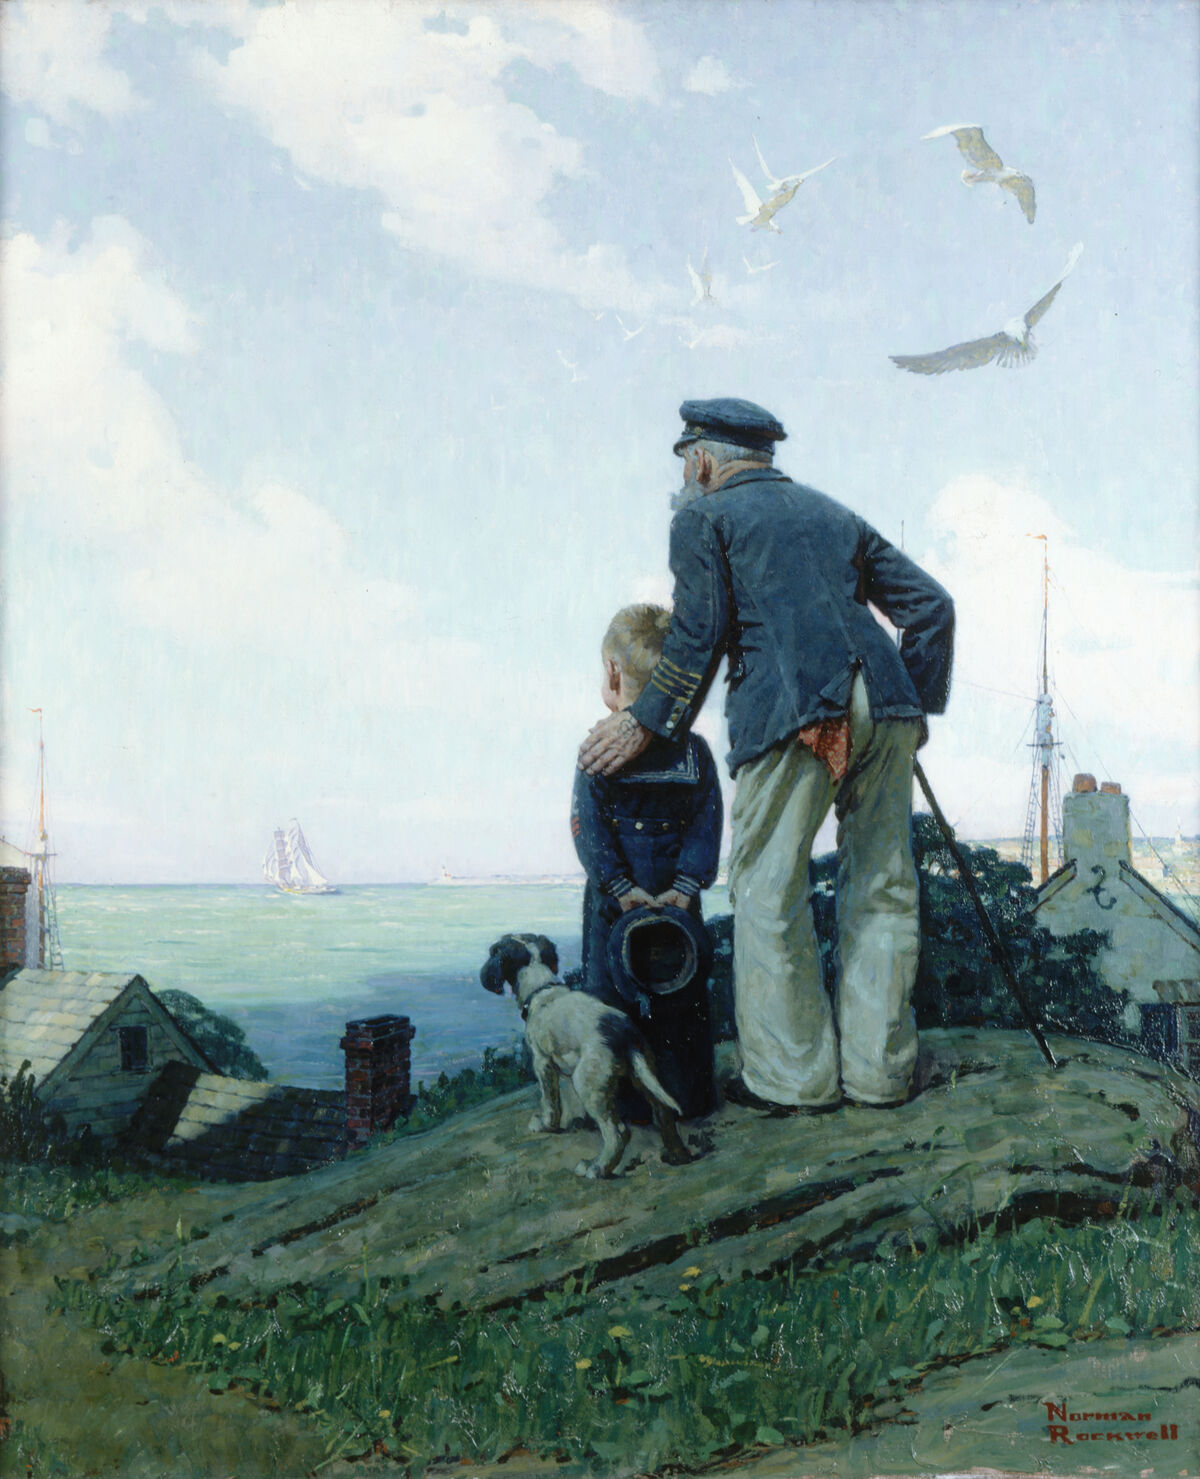 Norman Rockwell, The Stay at Homes (Outward Bound), 1927. Illustration for Ladies' Home Journal, October 1927. © Norman Rockwell Family Agency. Courtesy of the Norman Rockwell Museum.